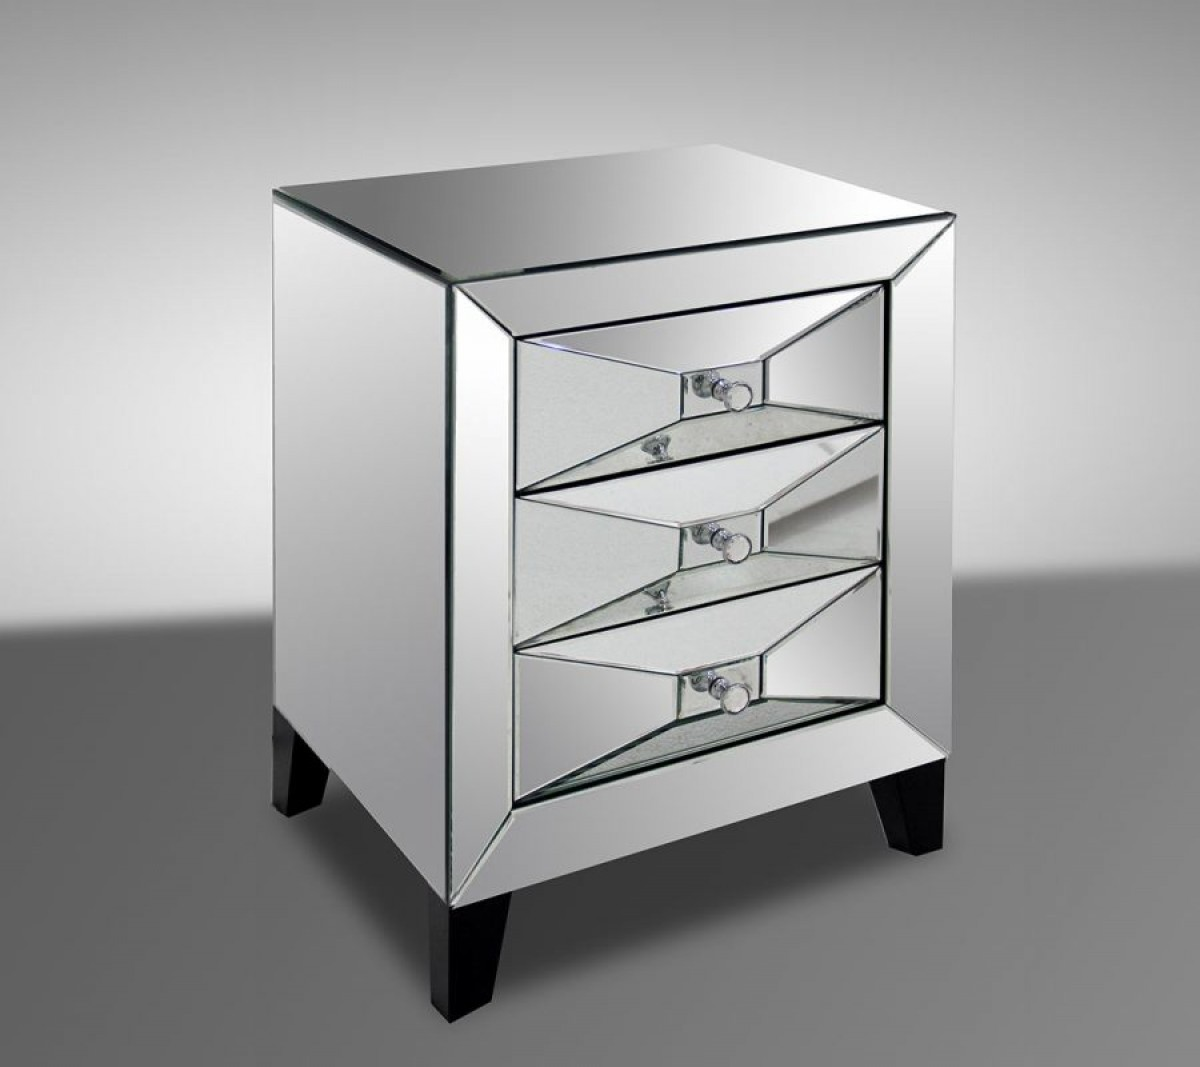 Modrest warwick transitional mirror bedside table for Mirror nightstand